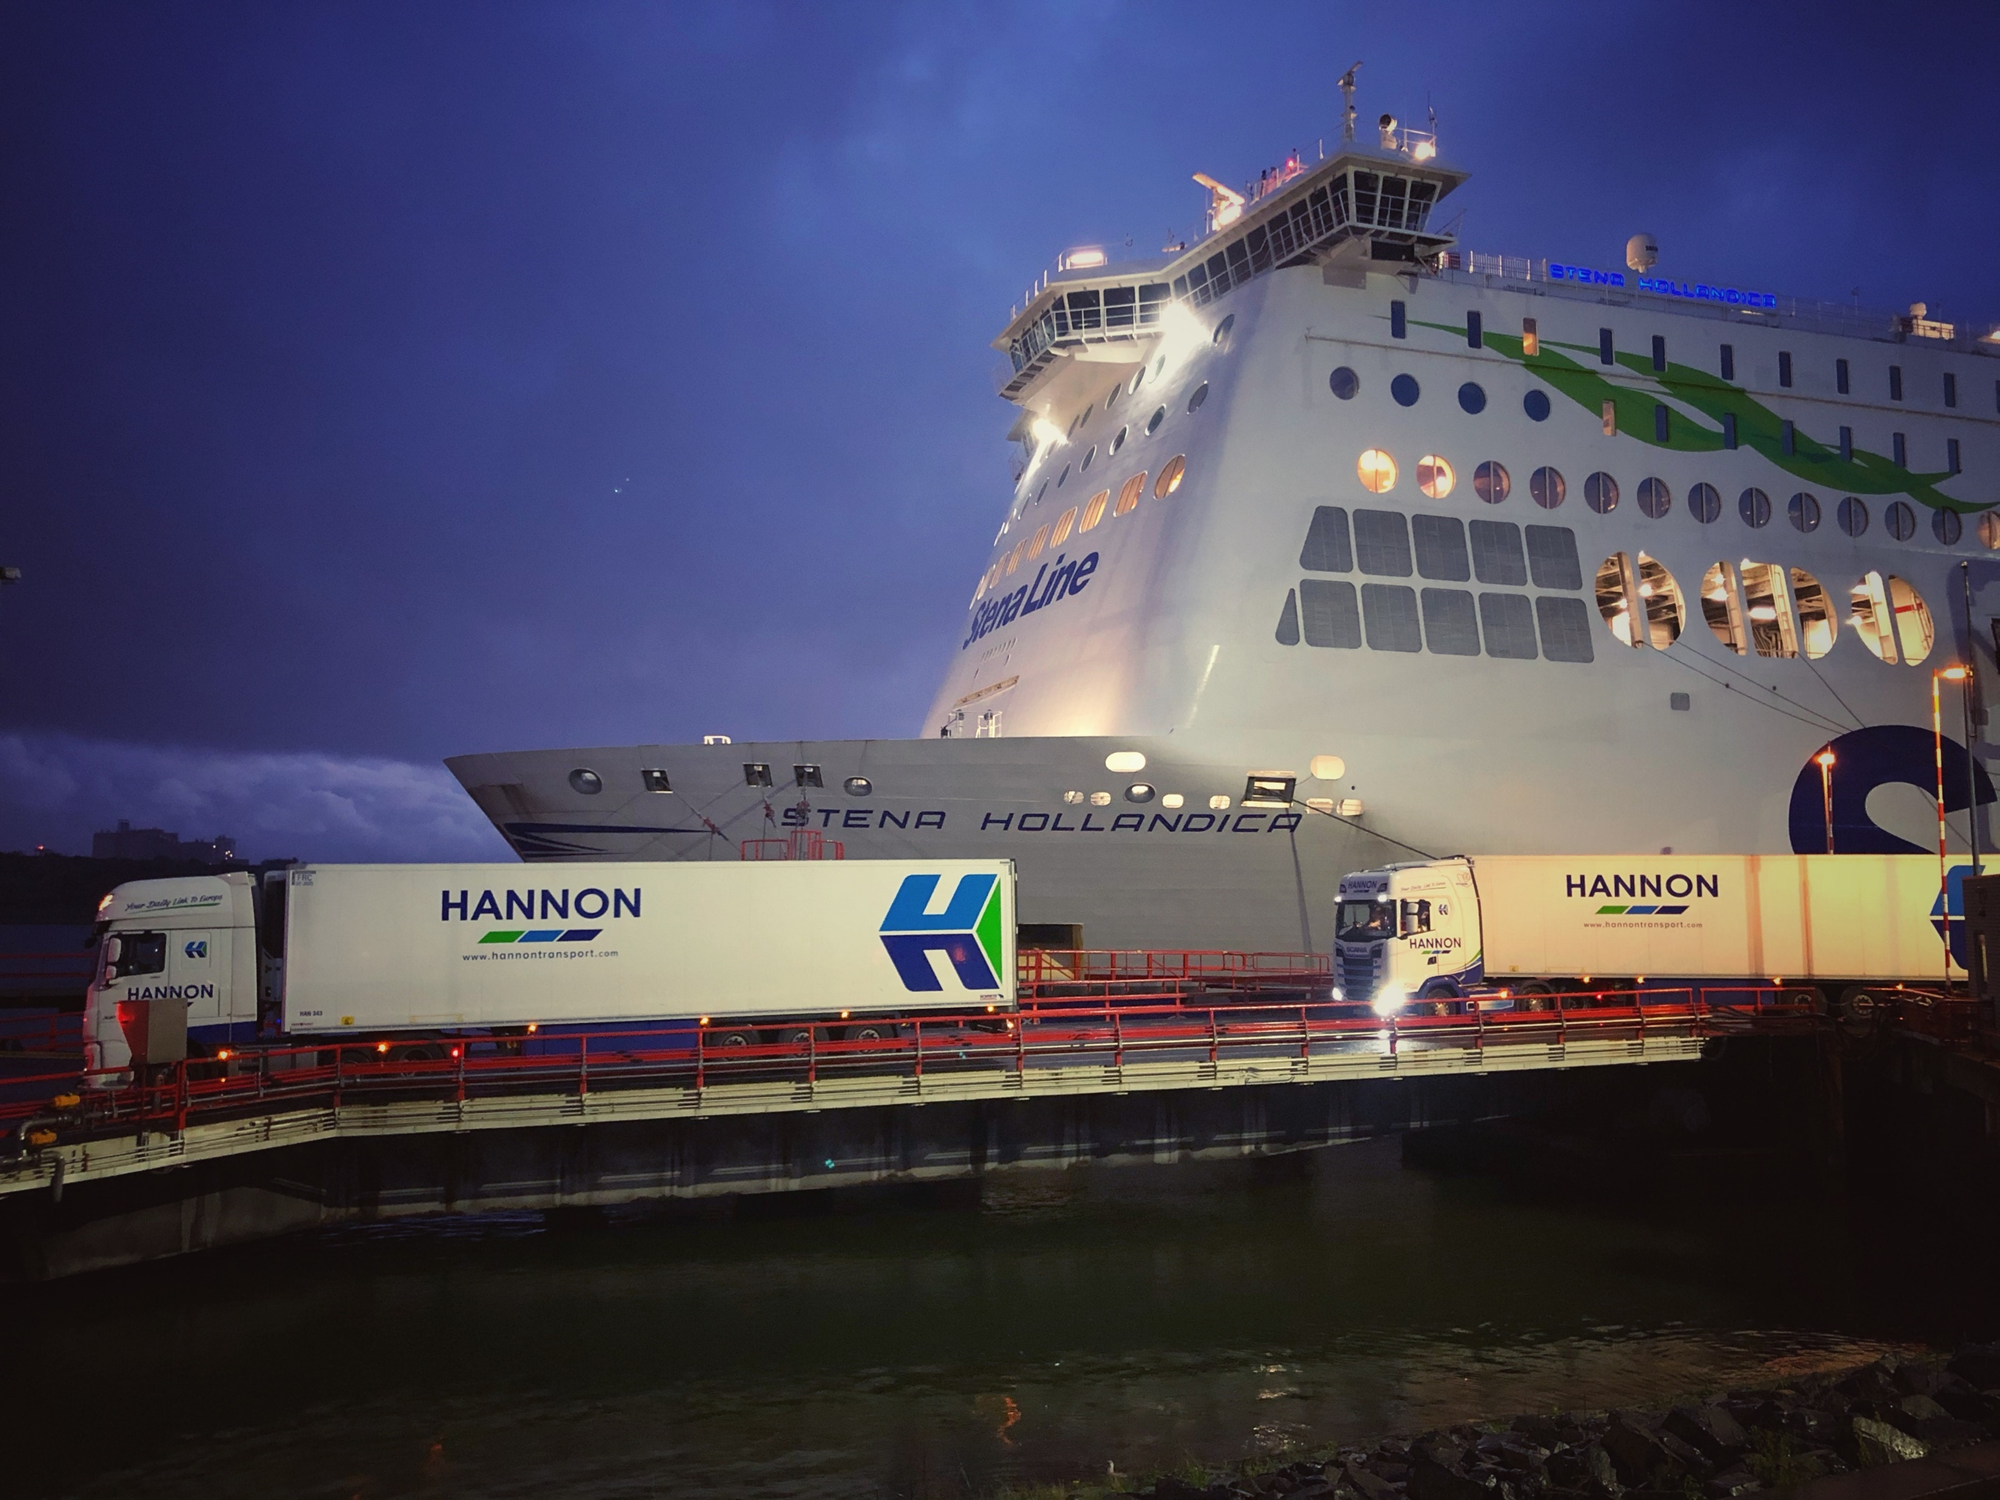 HANNON at Hoek van Holland